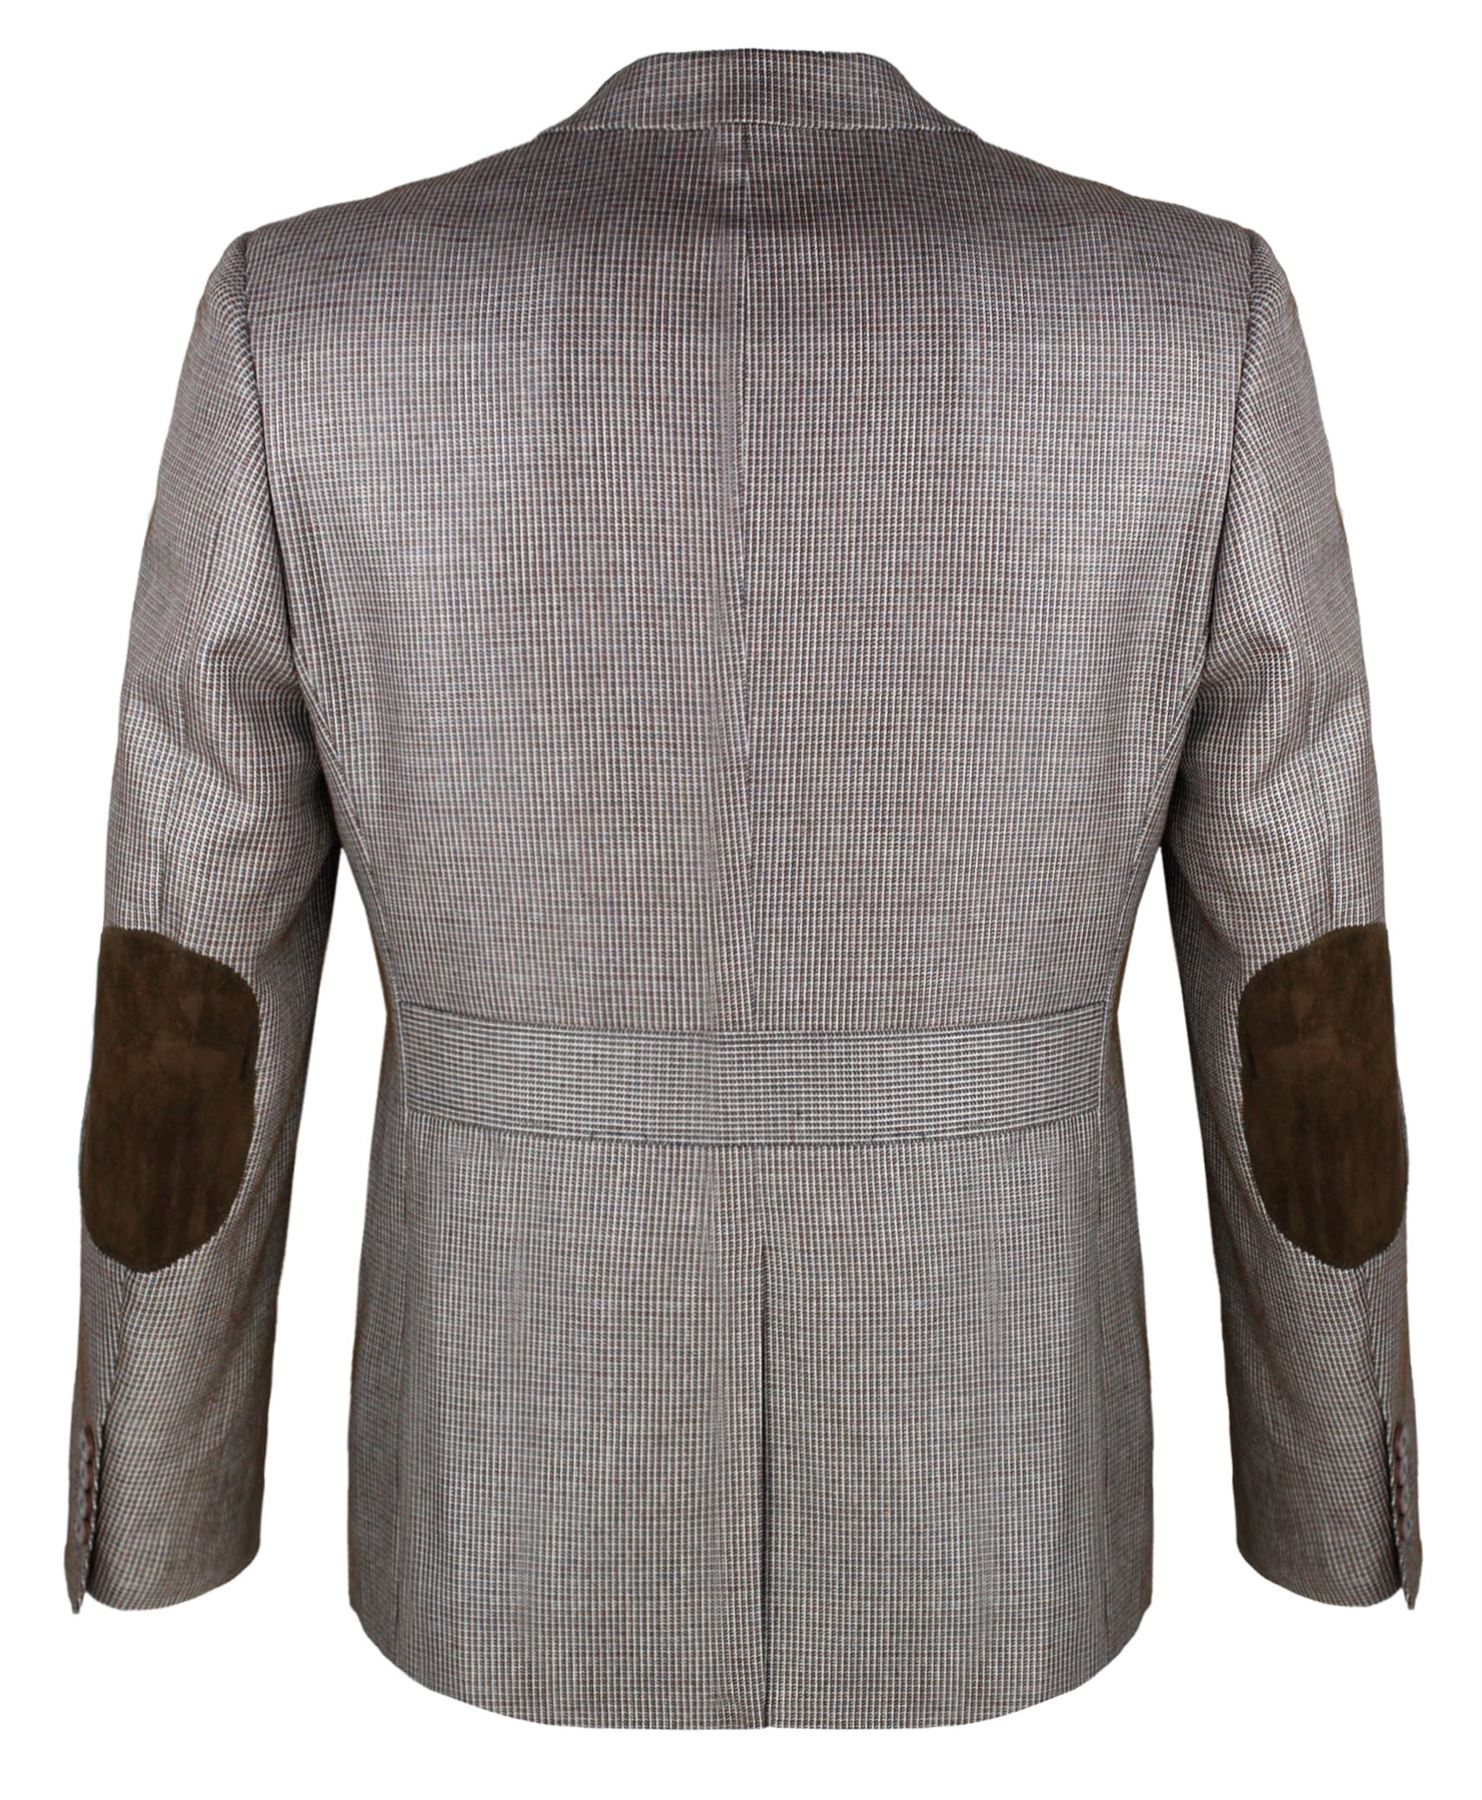 Add sophistication to your look with a Blazer Jacket, Men's Blazer Jacket, Women's Blazer Jacket or Juniors Blazer Jacket.